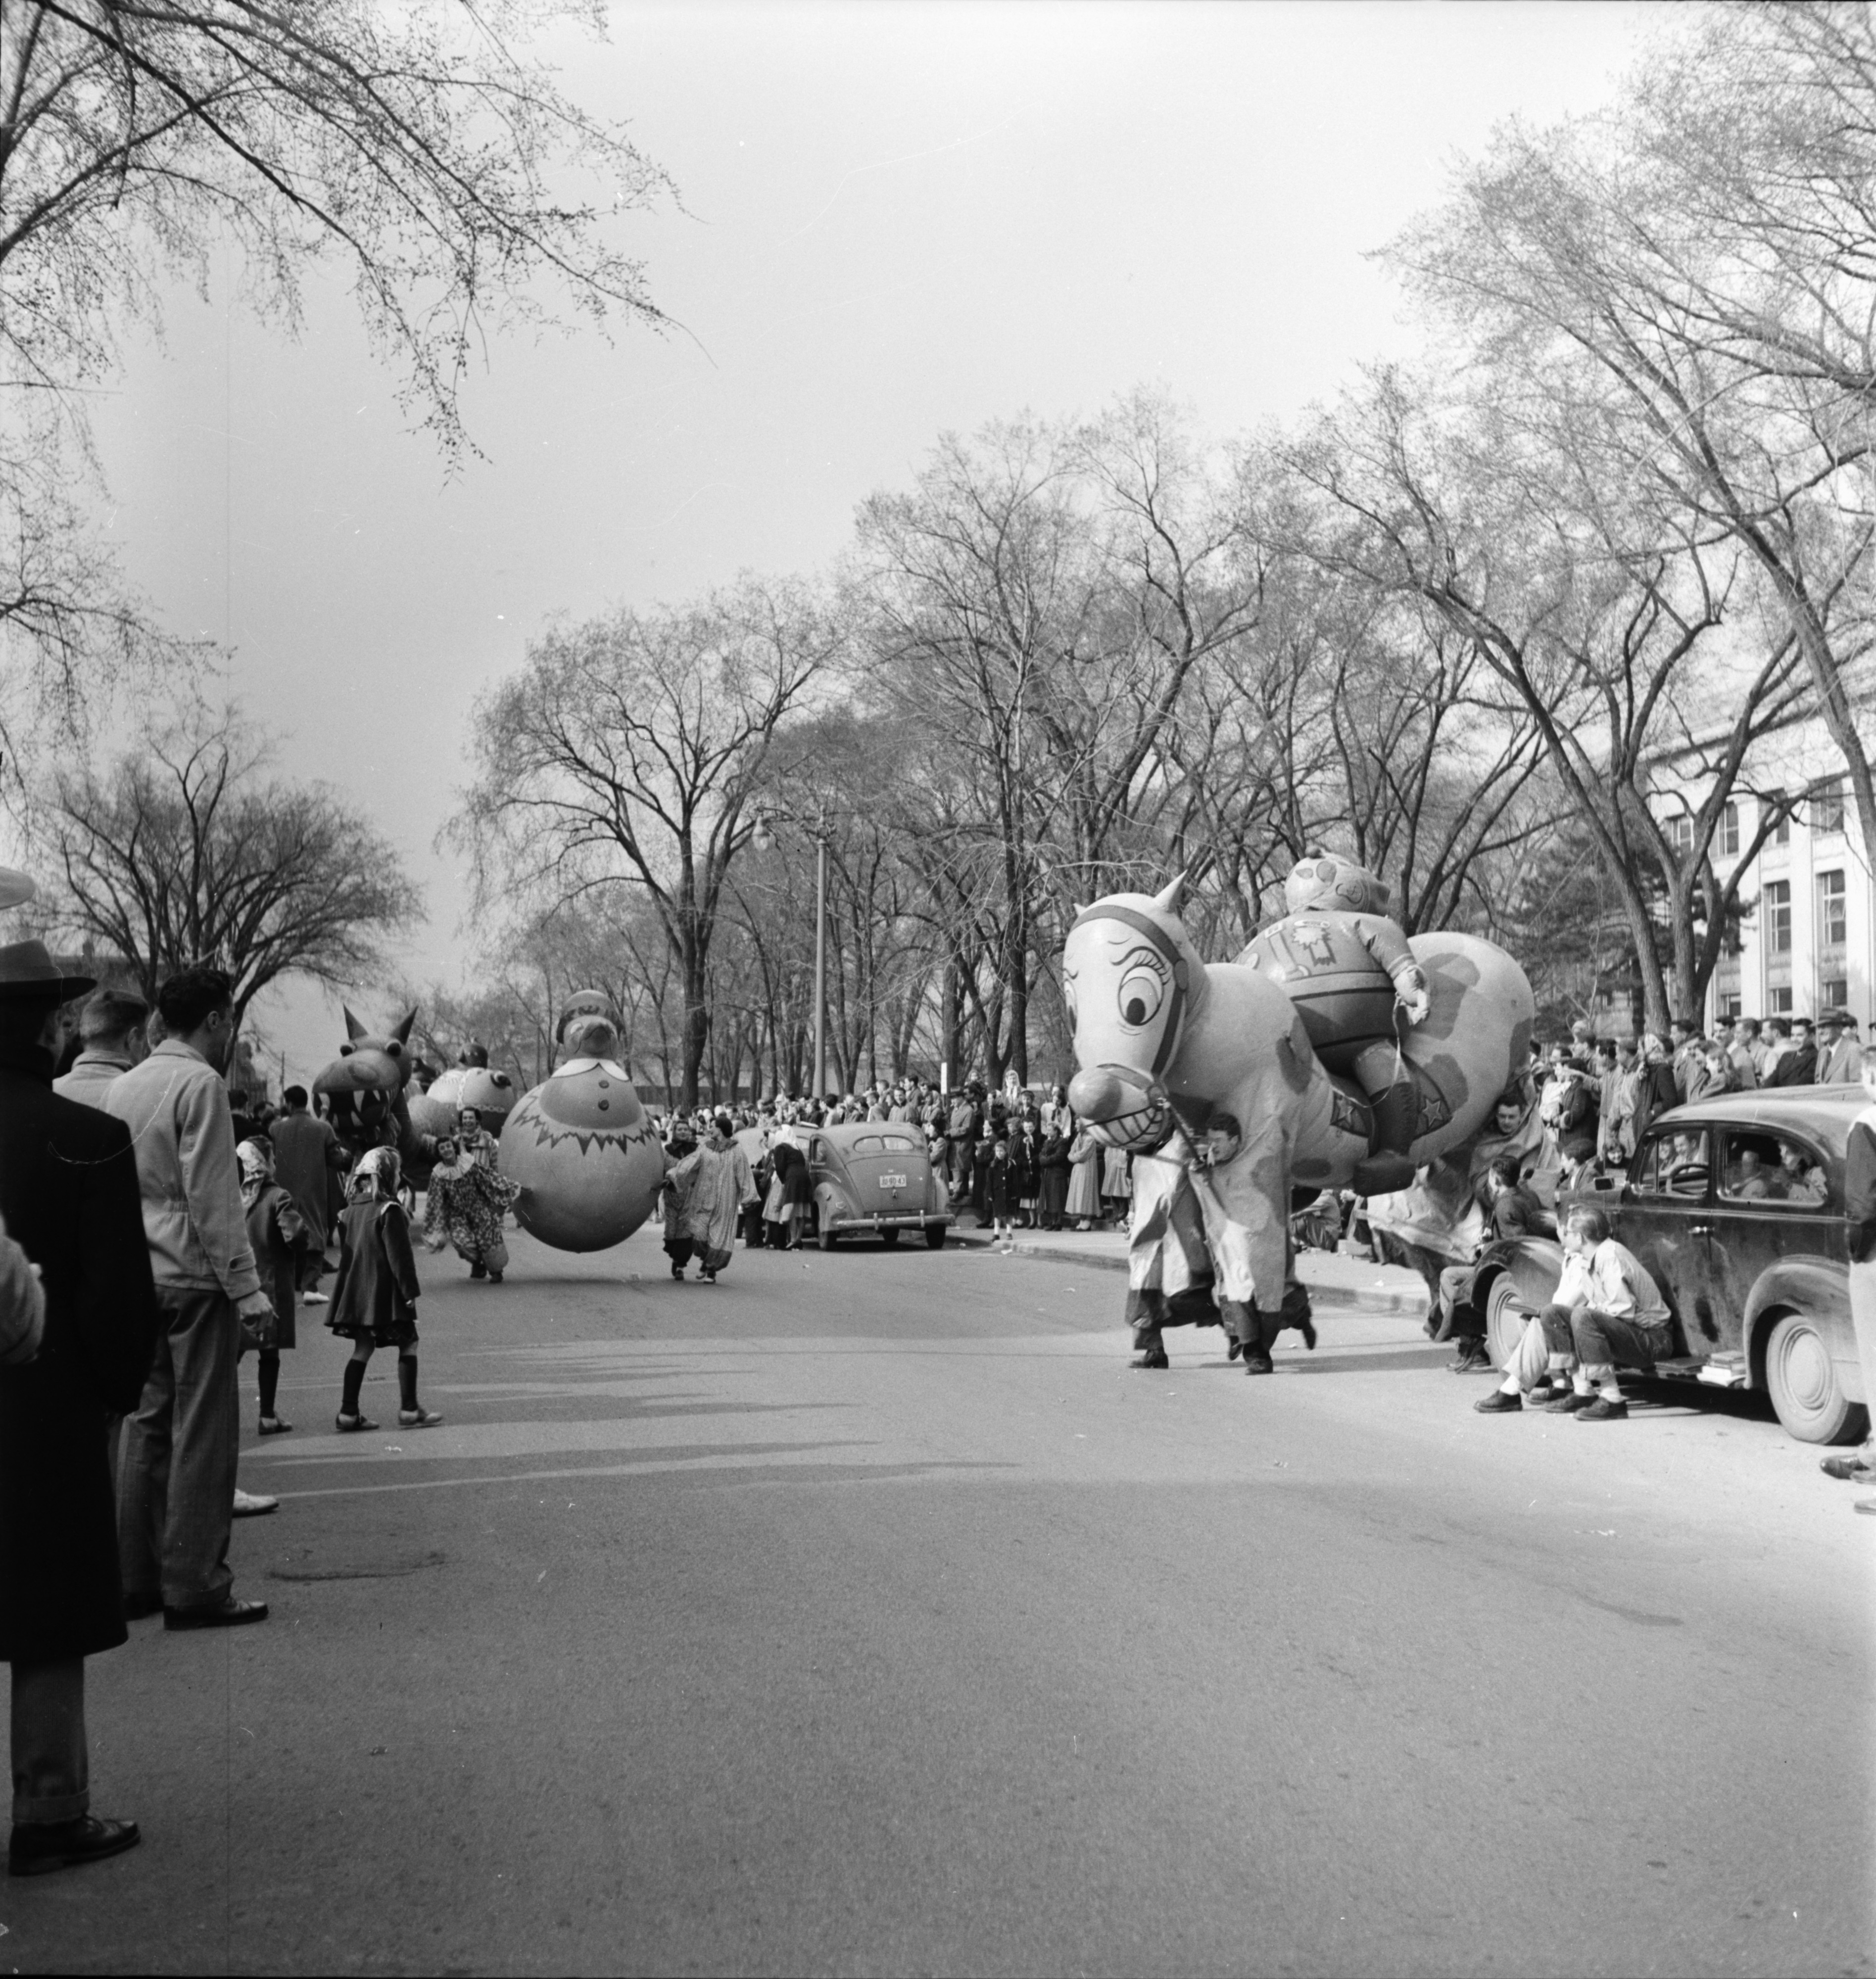 Balloon Horse in the U-M Michigras Parade, April 1950 image